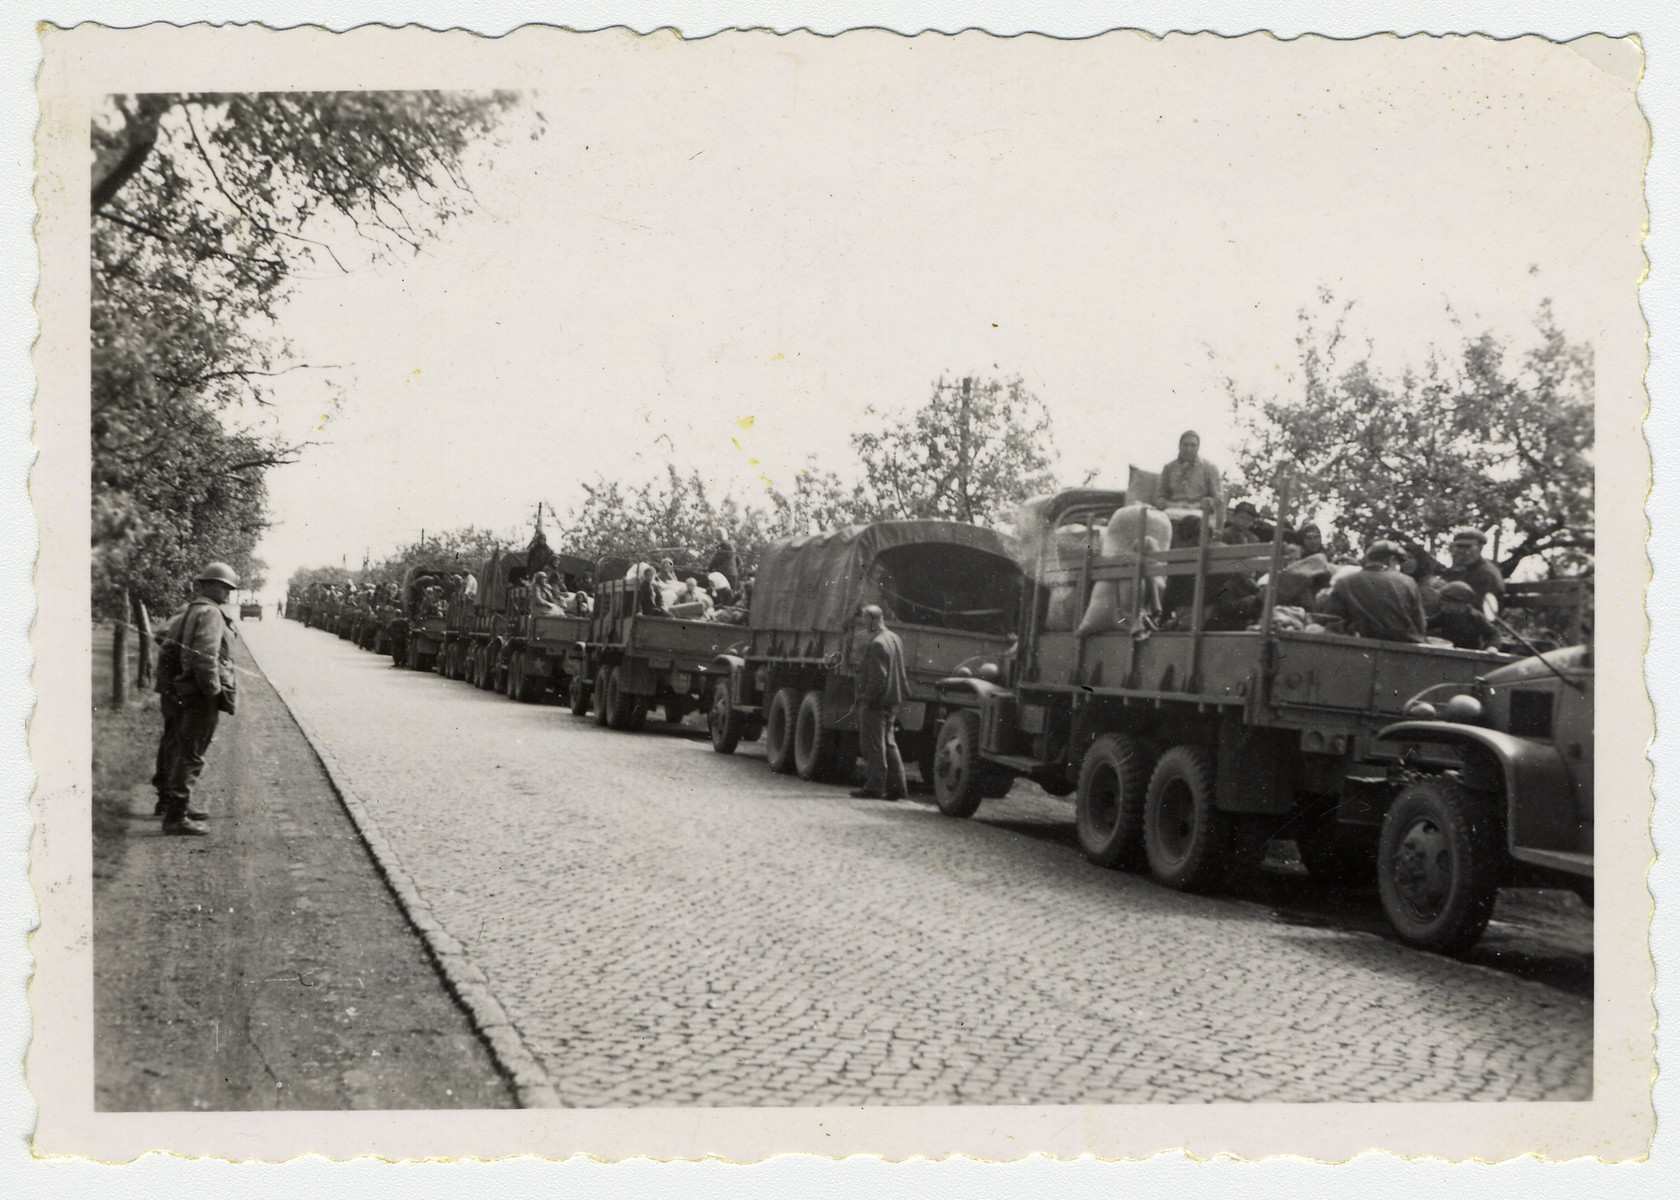 Displaced persons en board a truck convoy prepare to emigrate, assisted by members of the U.S. Army.